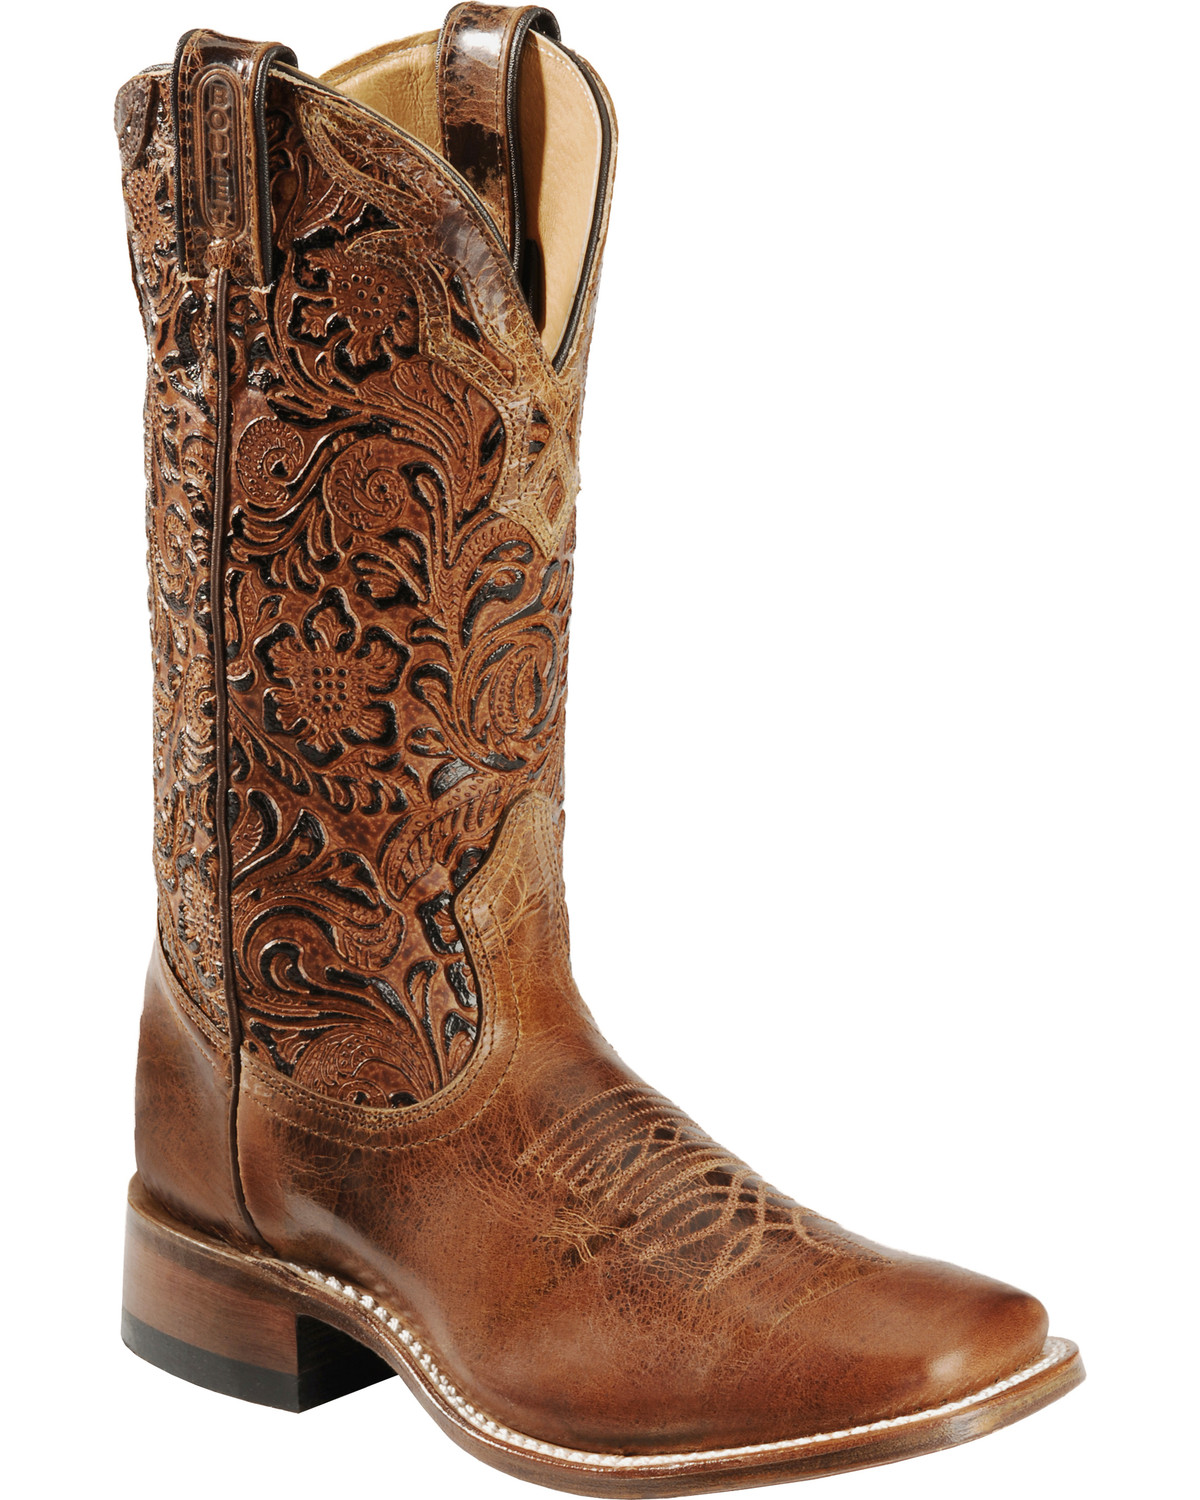 Boulet Hand Tooled Calf Cowgirl Boots , Square Toe